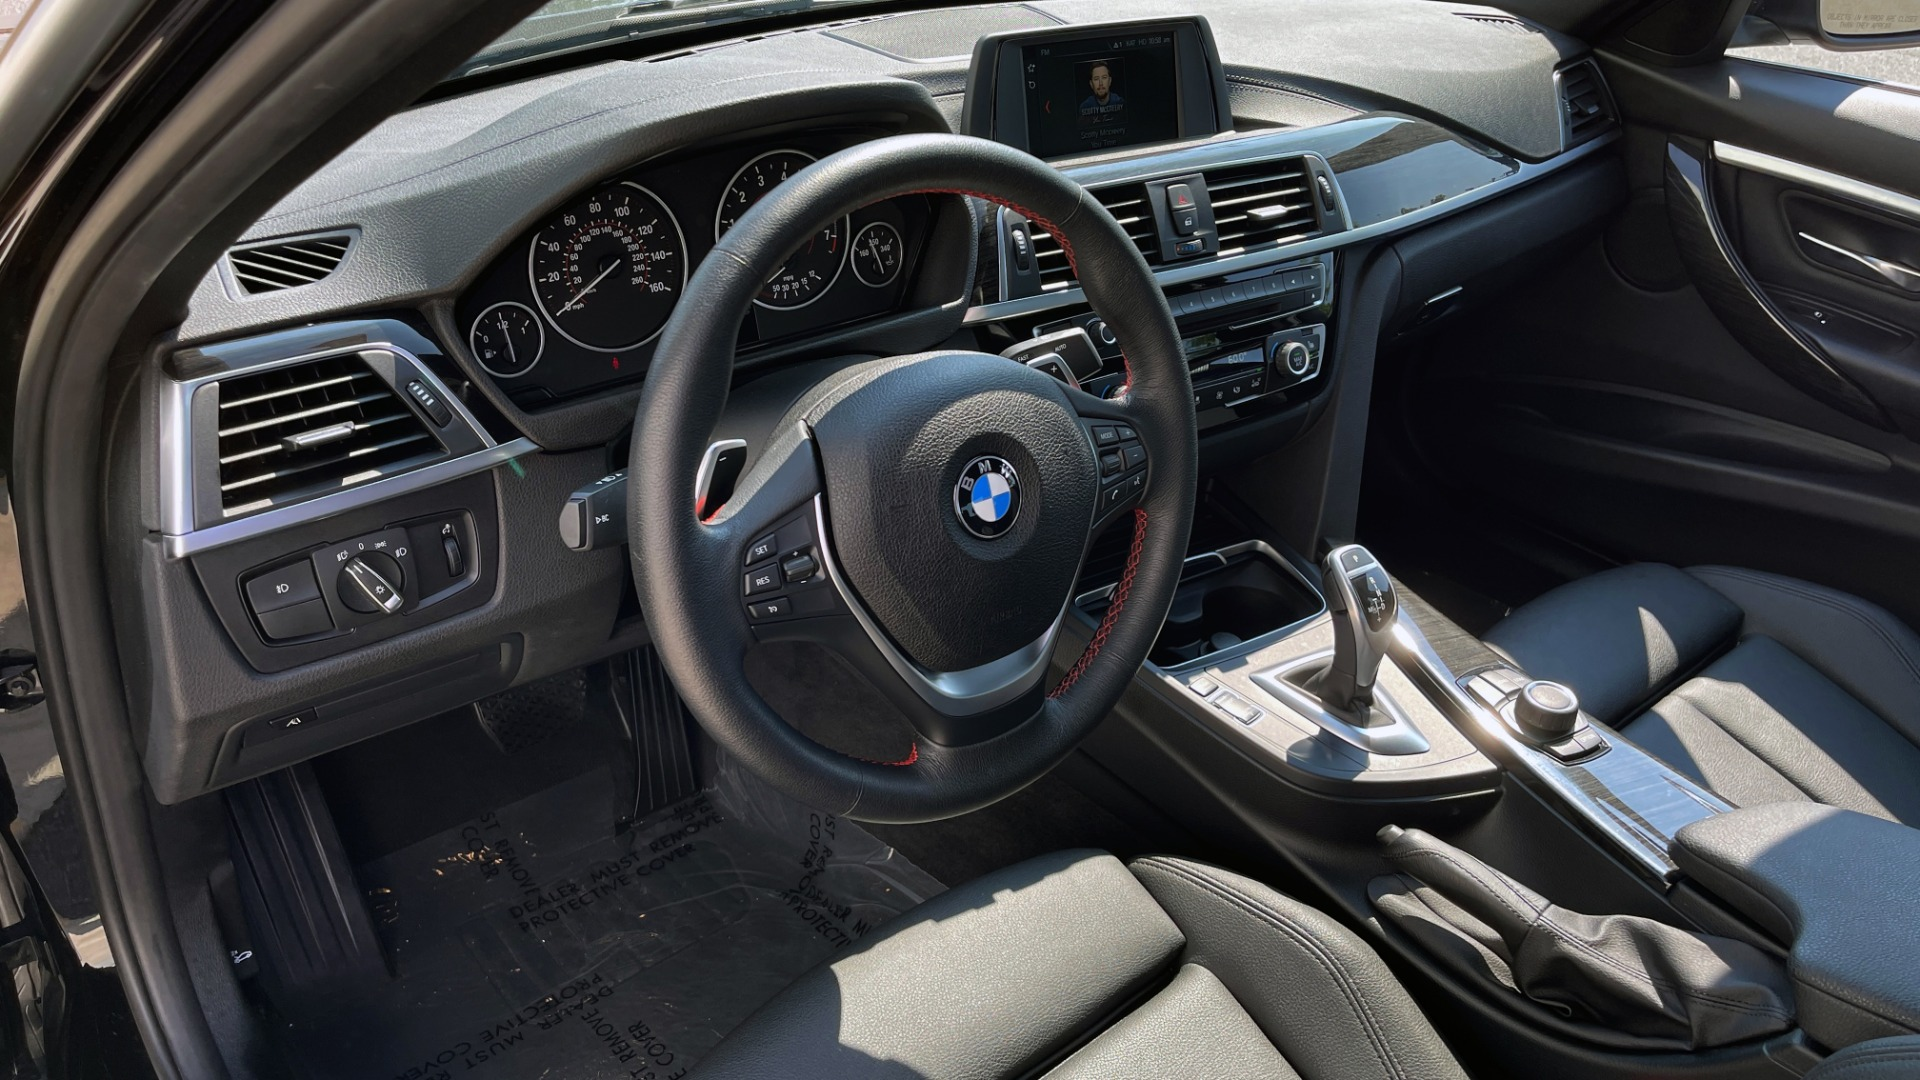 Used 2018 BMW 3 SERIES 330I XDRIVE / CONV PKG / SUNROOF / HTD STS / ABSD / REARVIEW for sale $30,695 at Formula Imports in Charlotte NC 28227 30